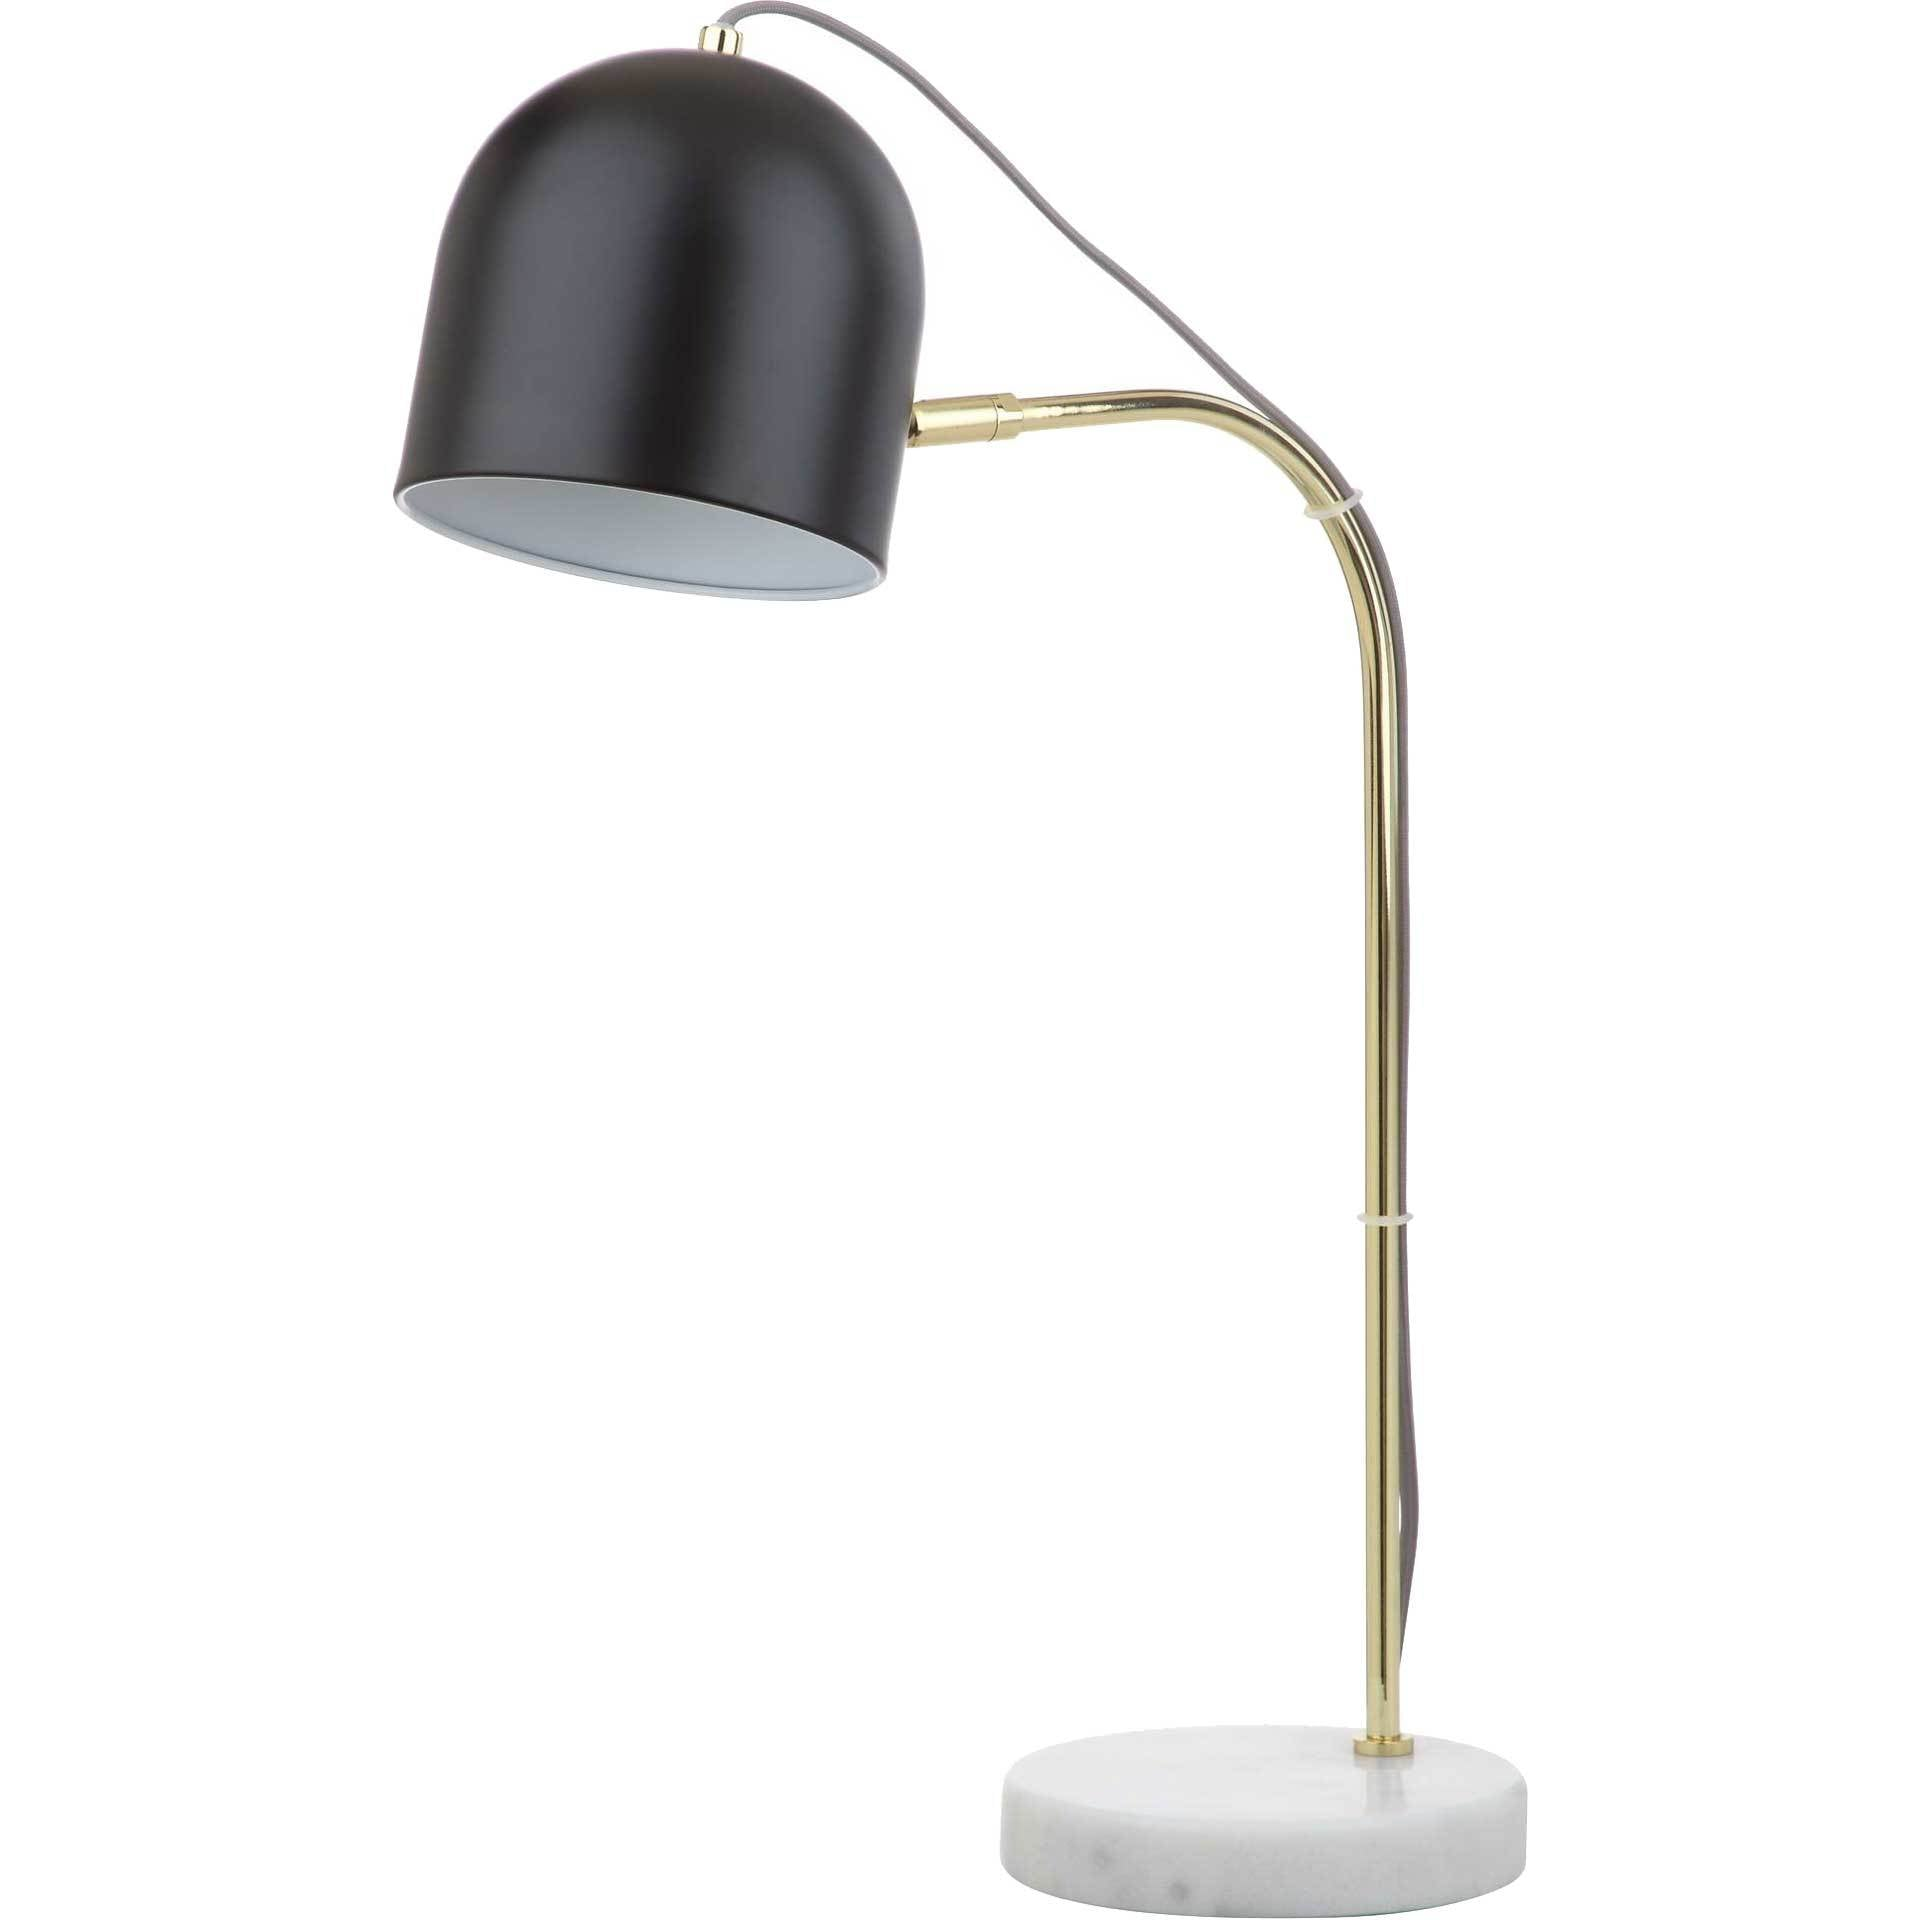 Draven Table Lamp Gold/Black